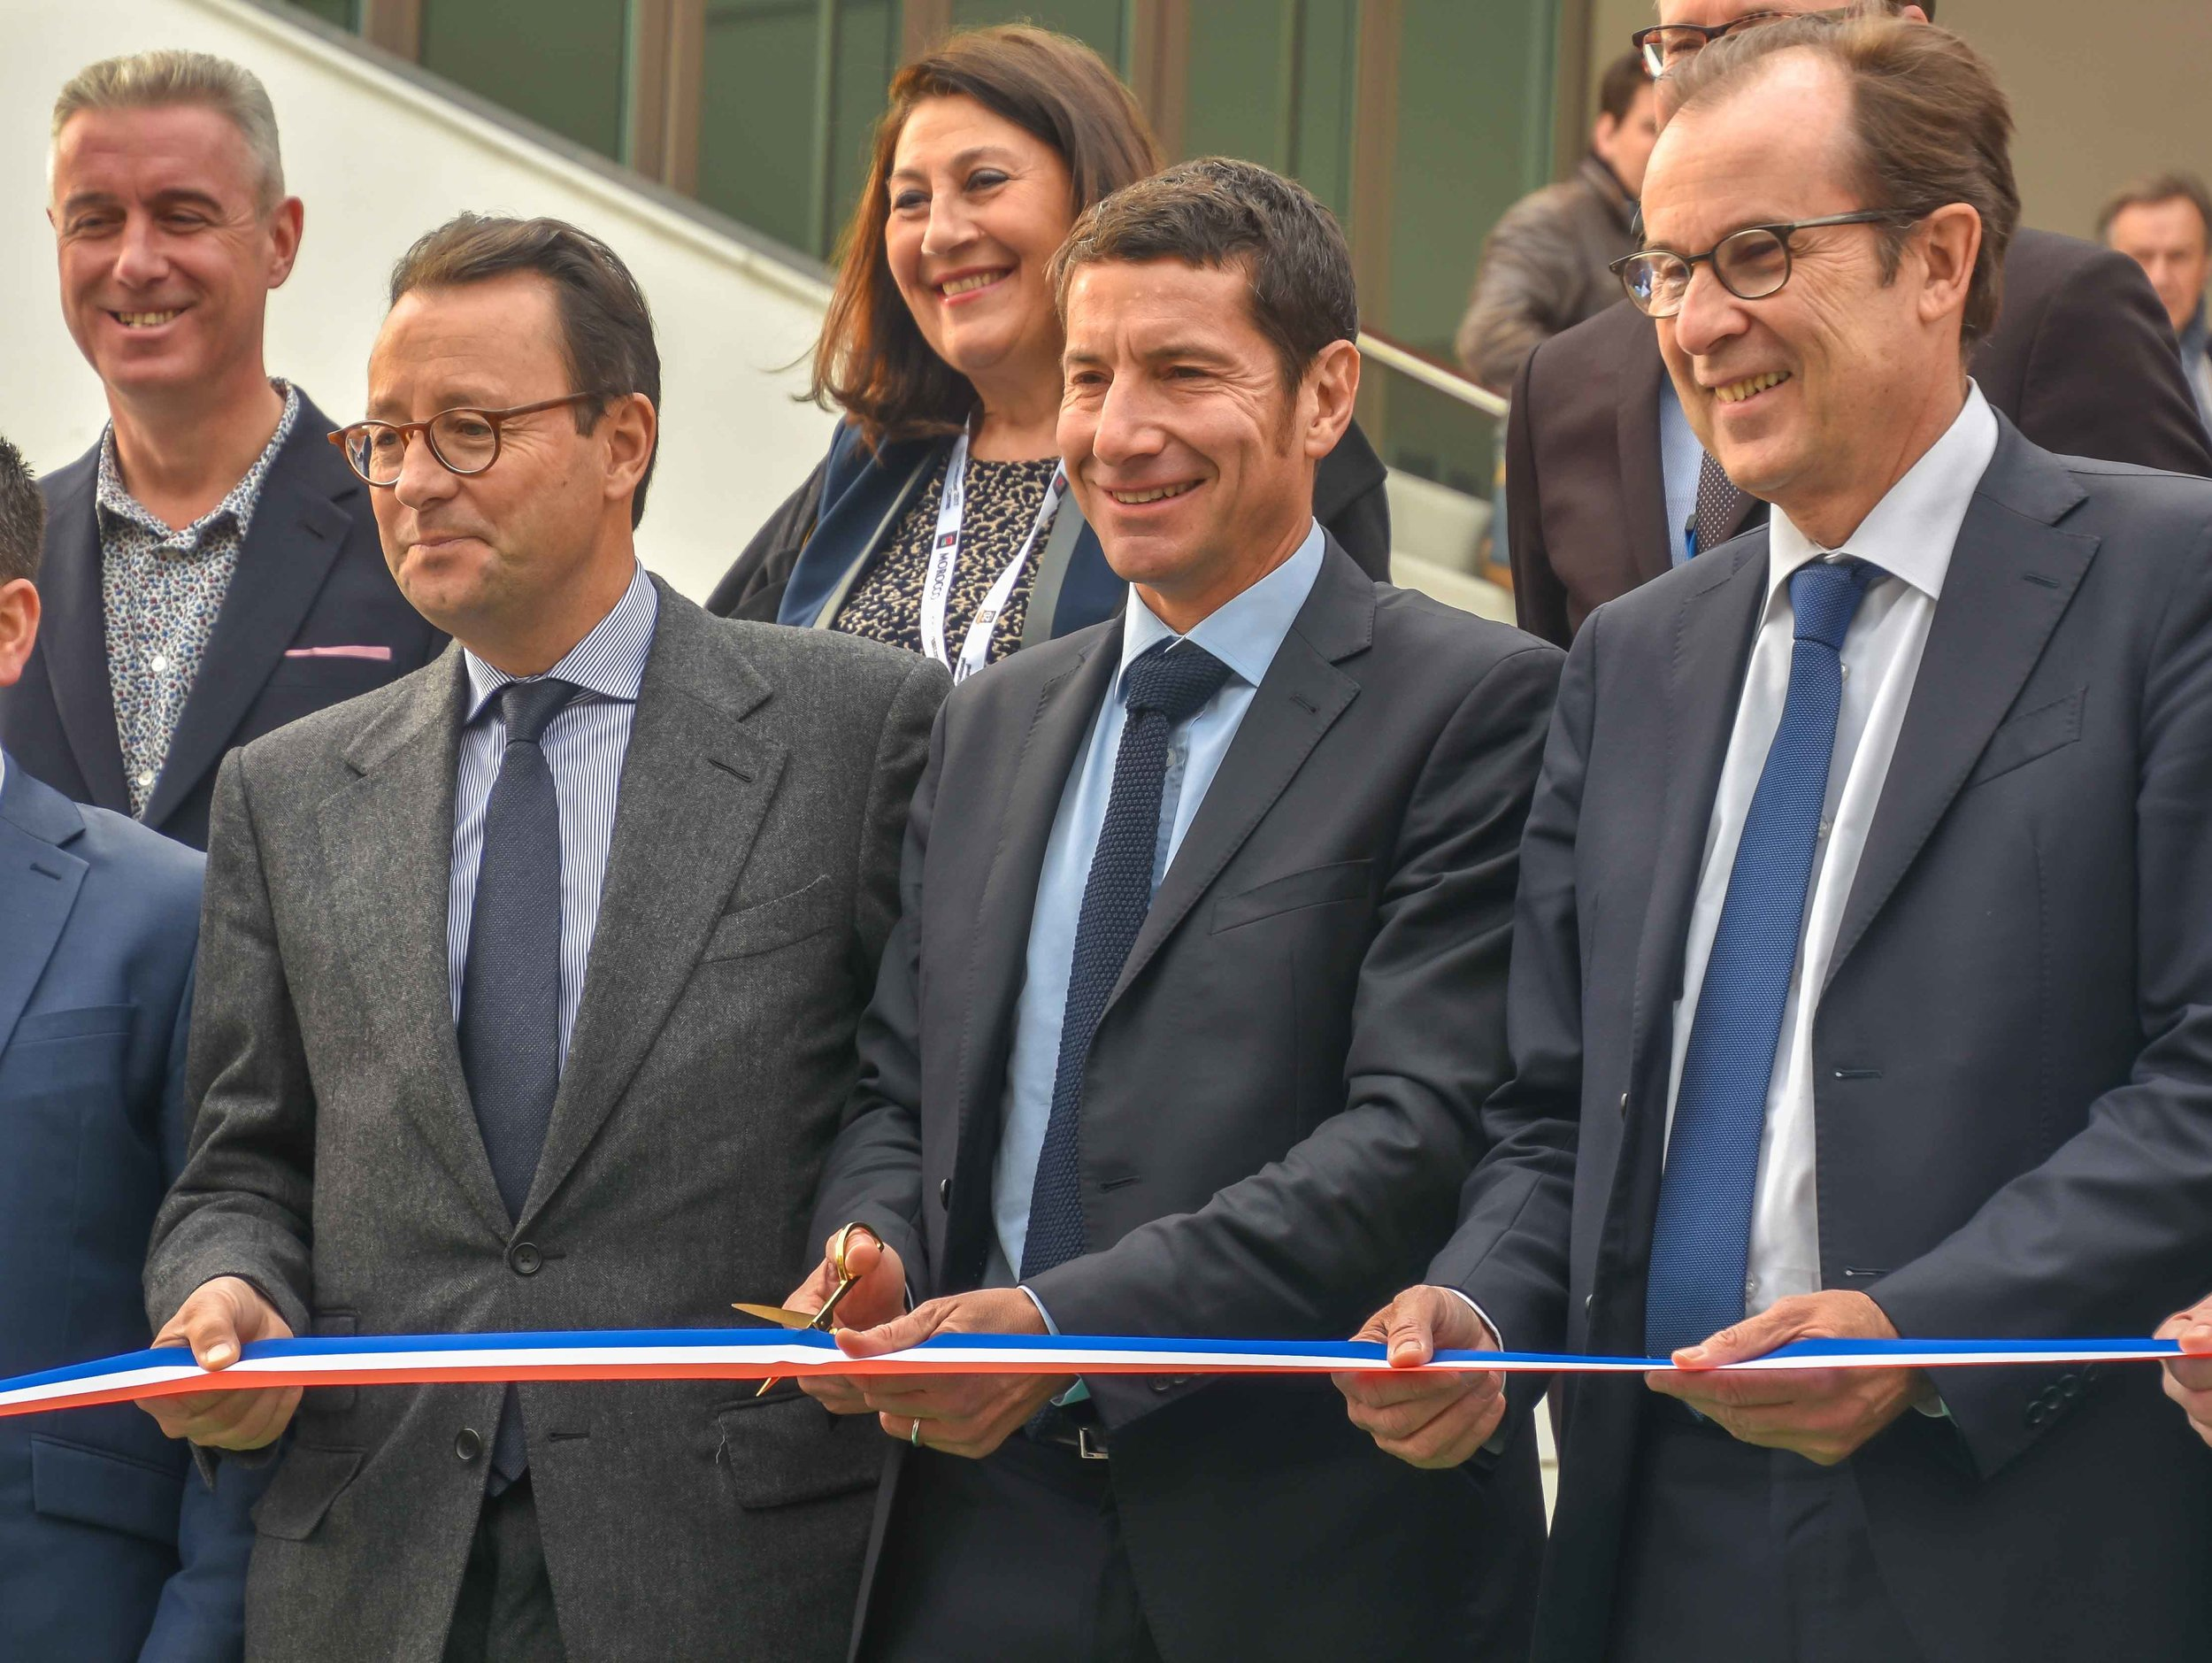 The Mayor of Cannes,David Lisnard,kicks things off with a ribbon cutting.